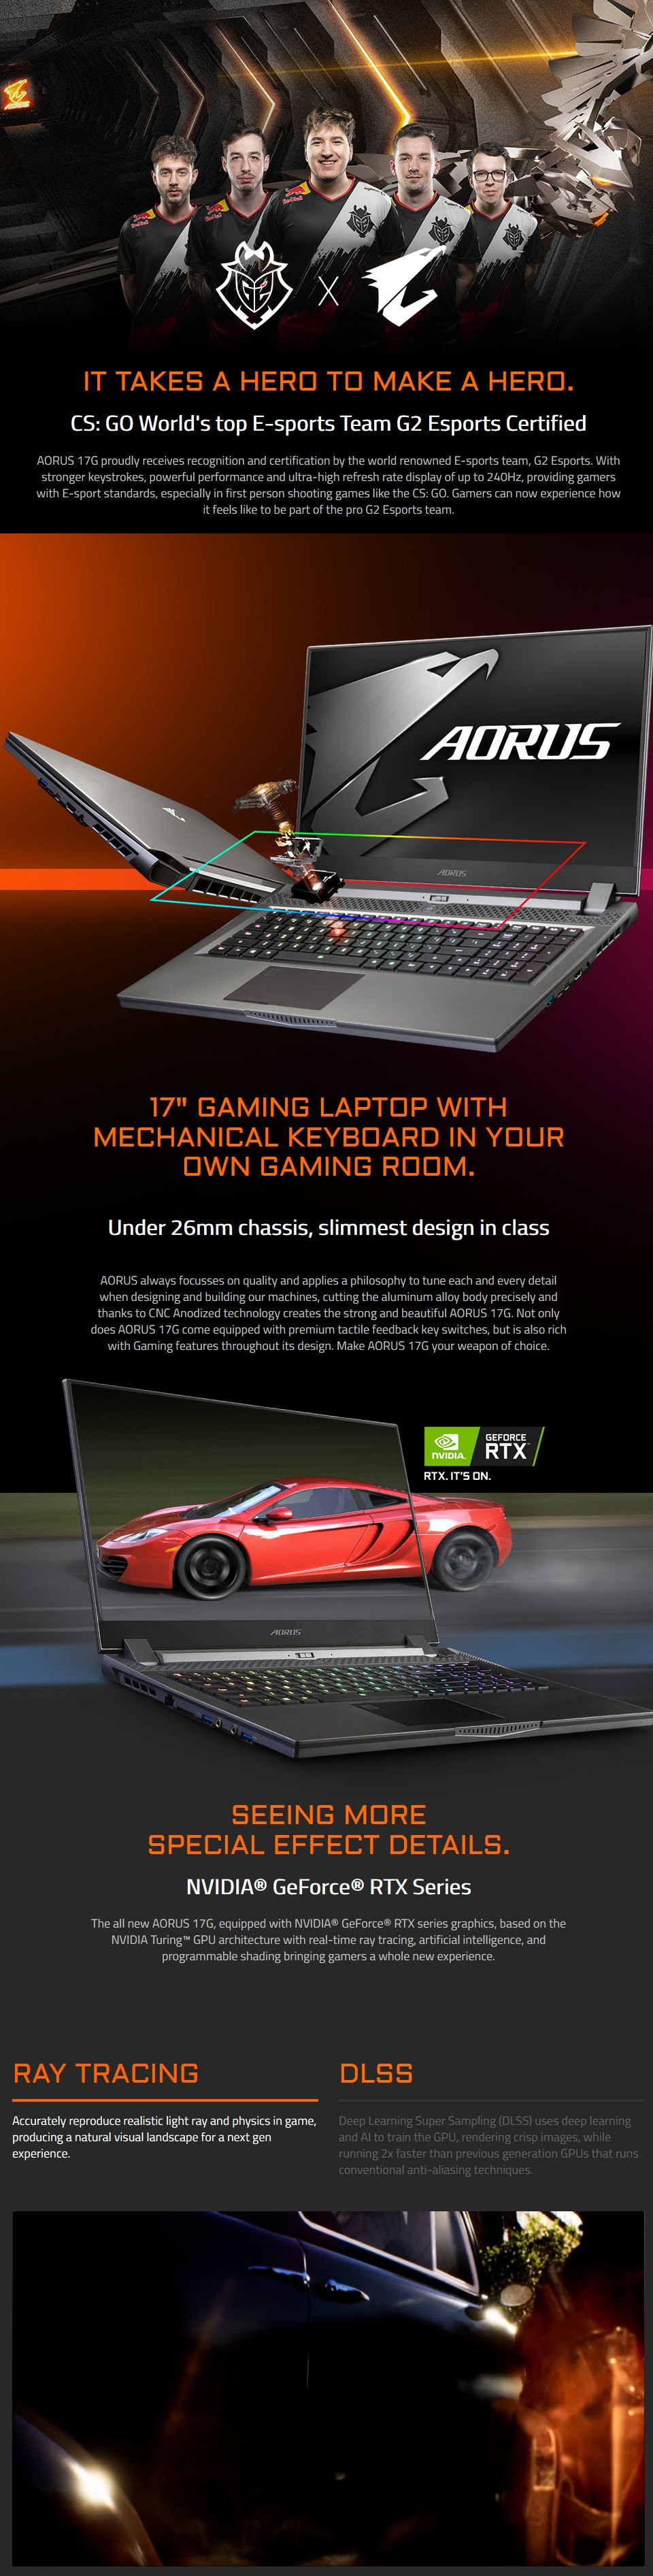 Gigabyte AORUS 17 Core i7 RTX 2060 17.3in 240Hz Gaming Laptop features